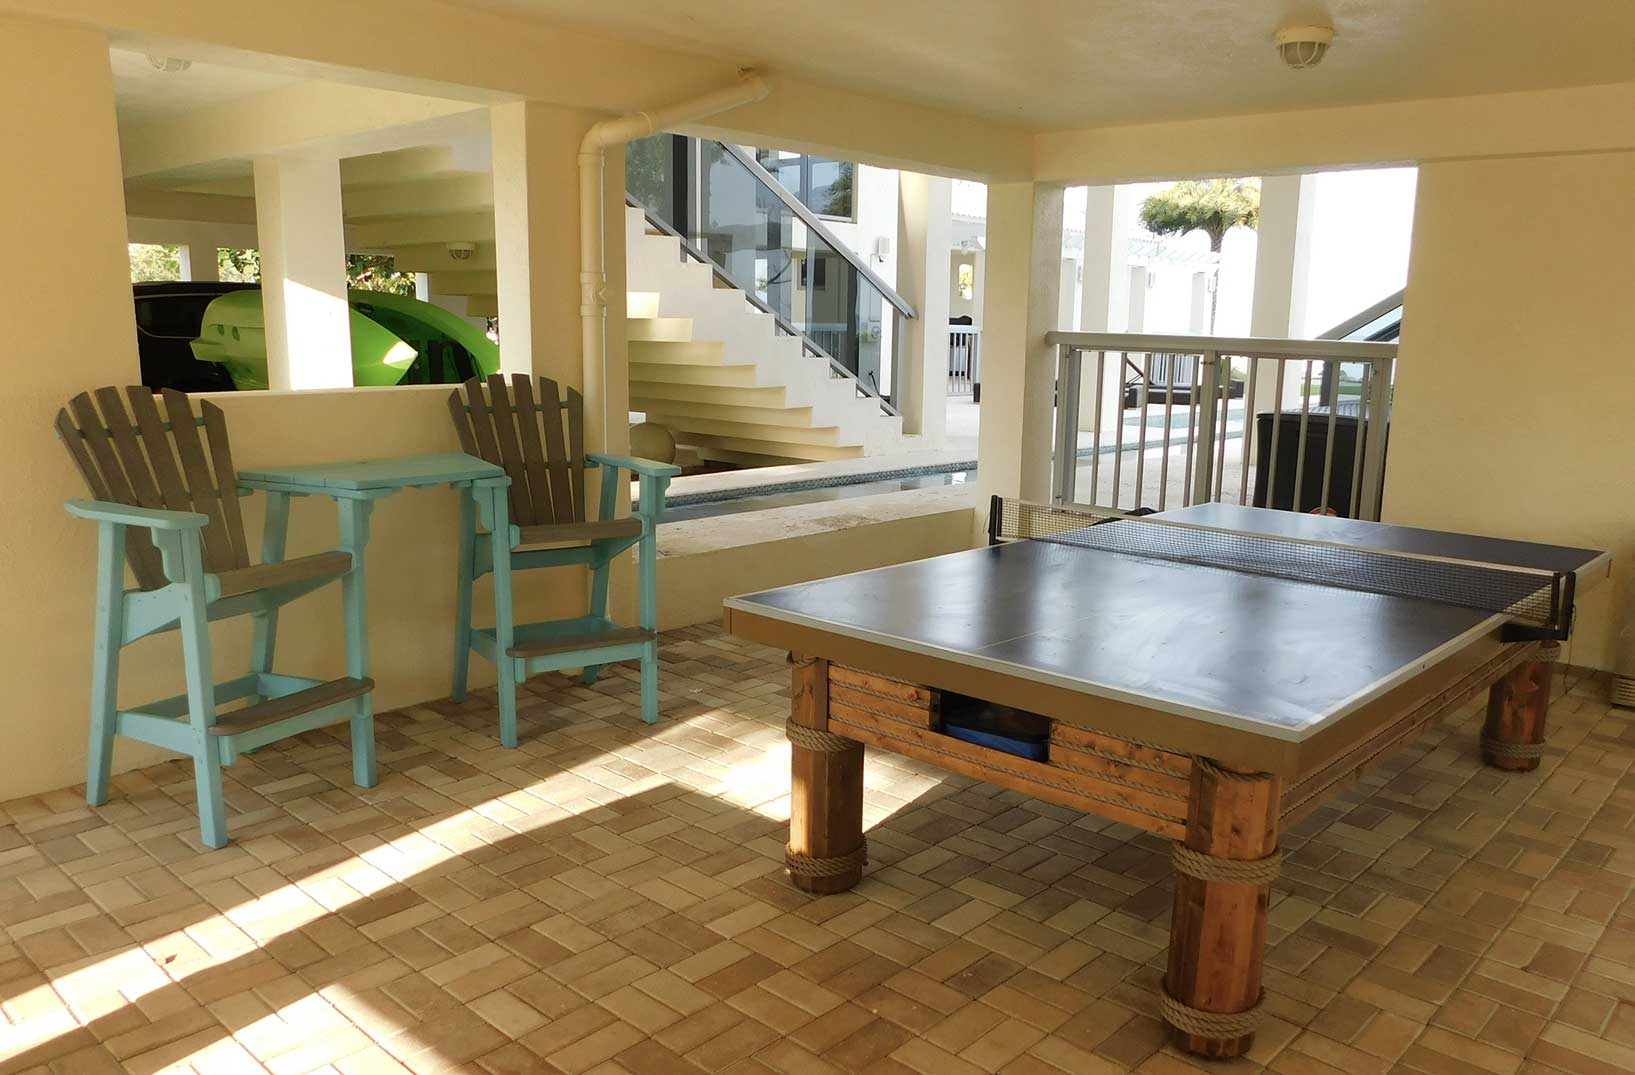 Southwest Florida home with Caribbean Outdoor Table Tennis Table from R&R Outdoors All Weather Billiards